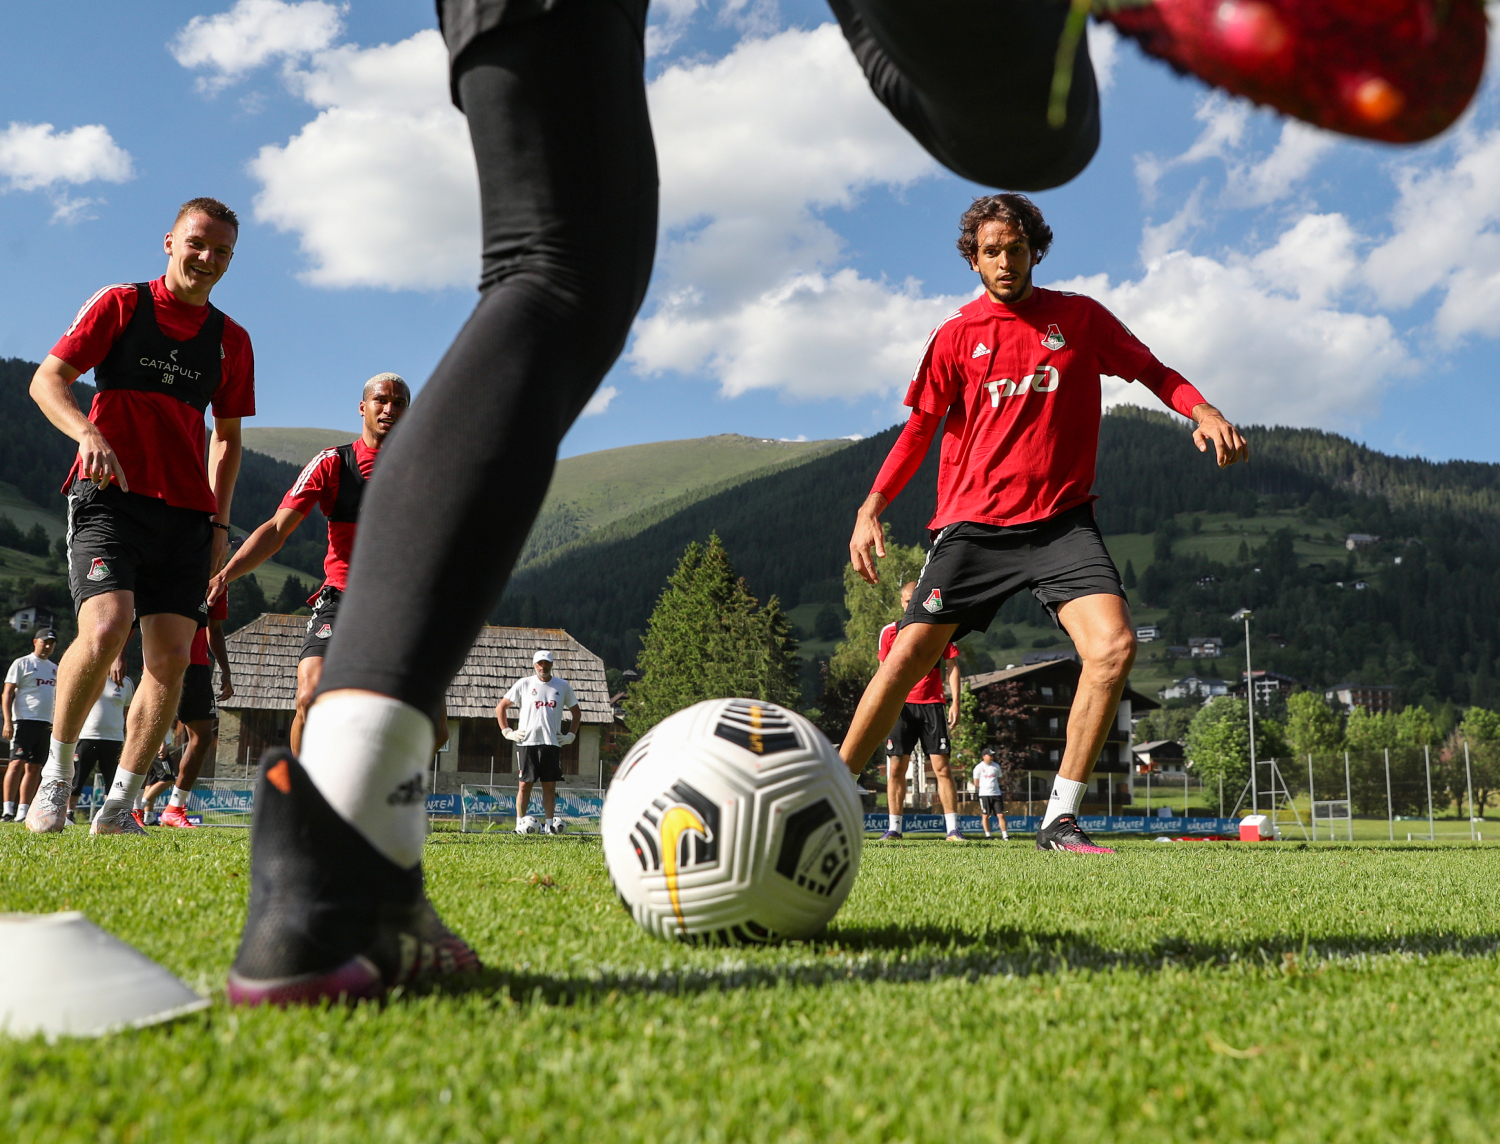 The ninth day of training camp in Austria.